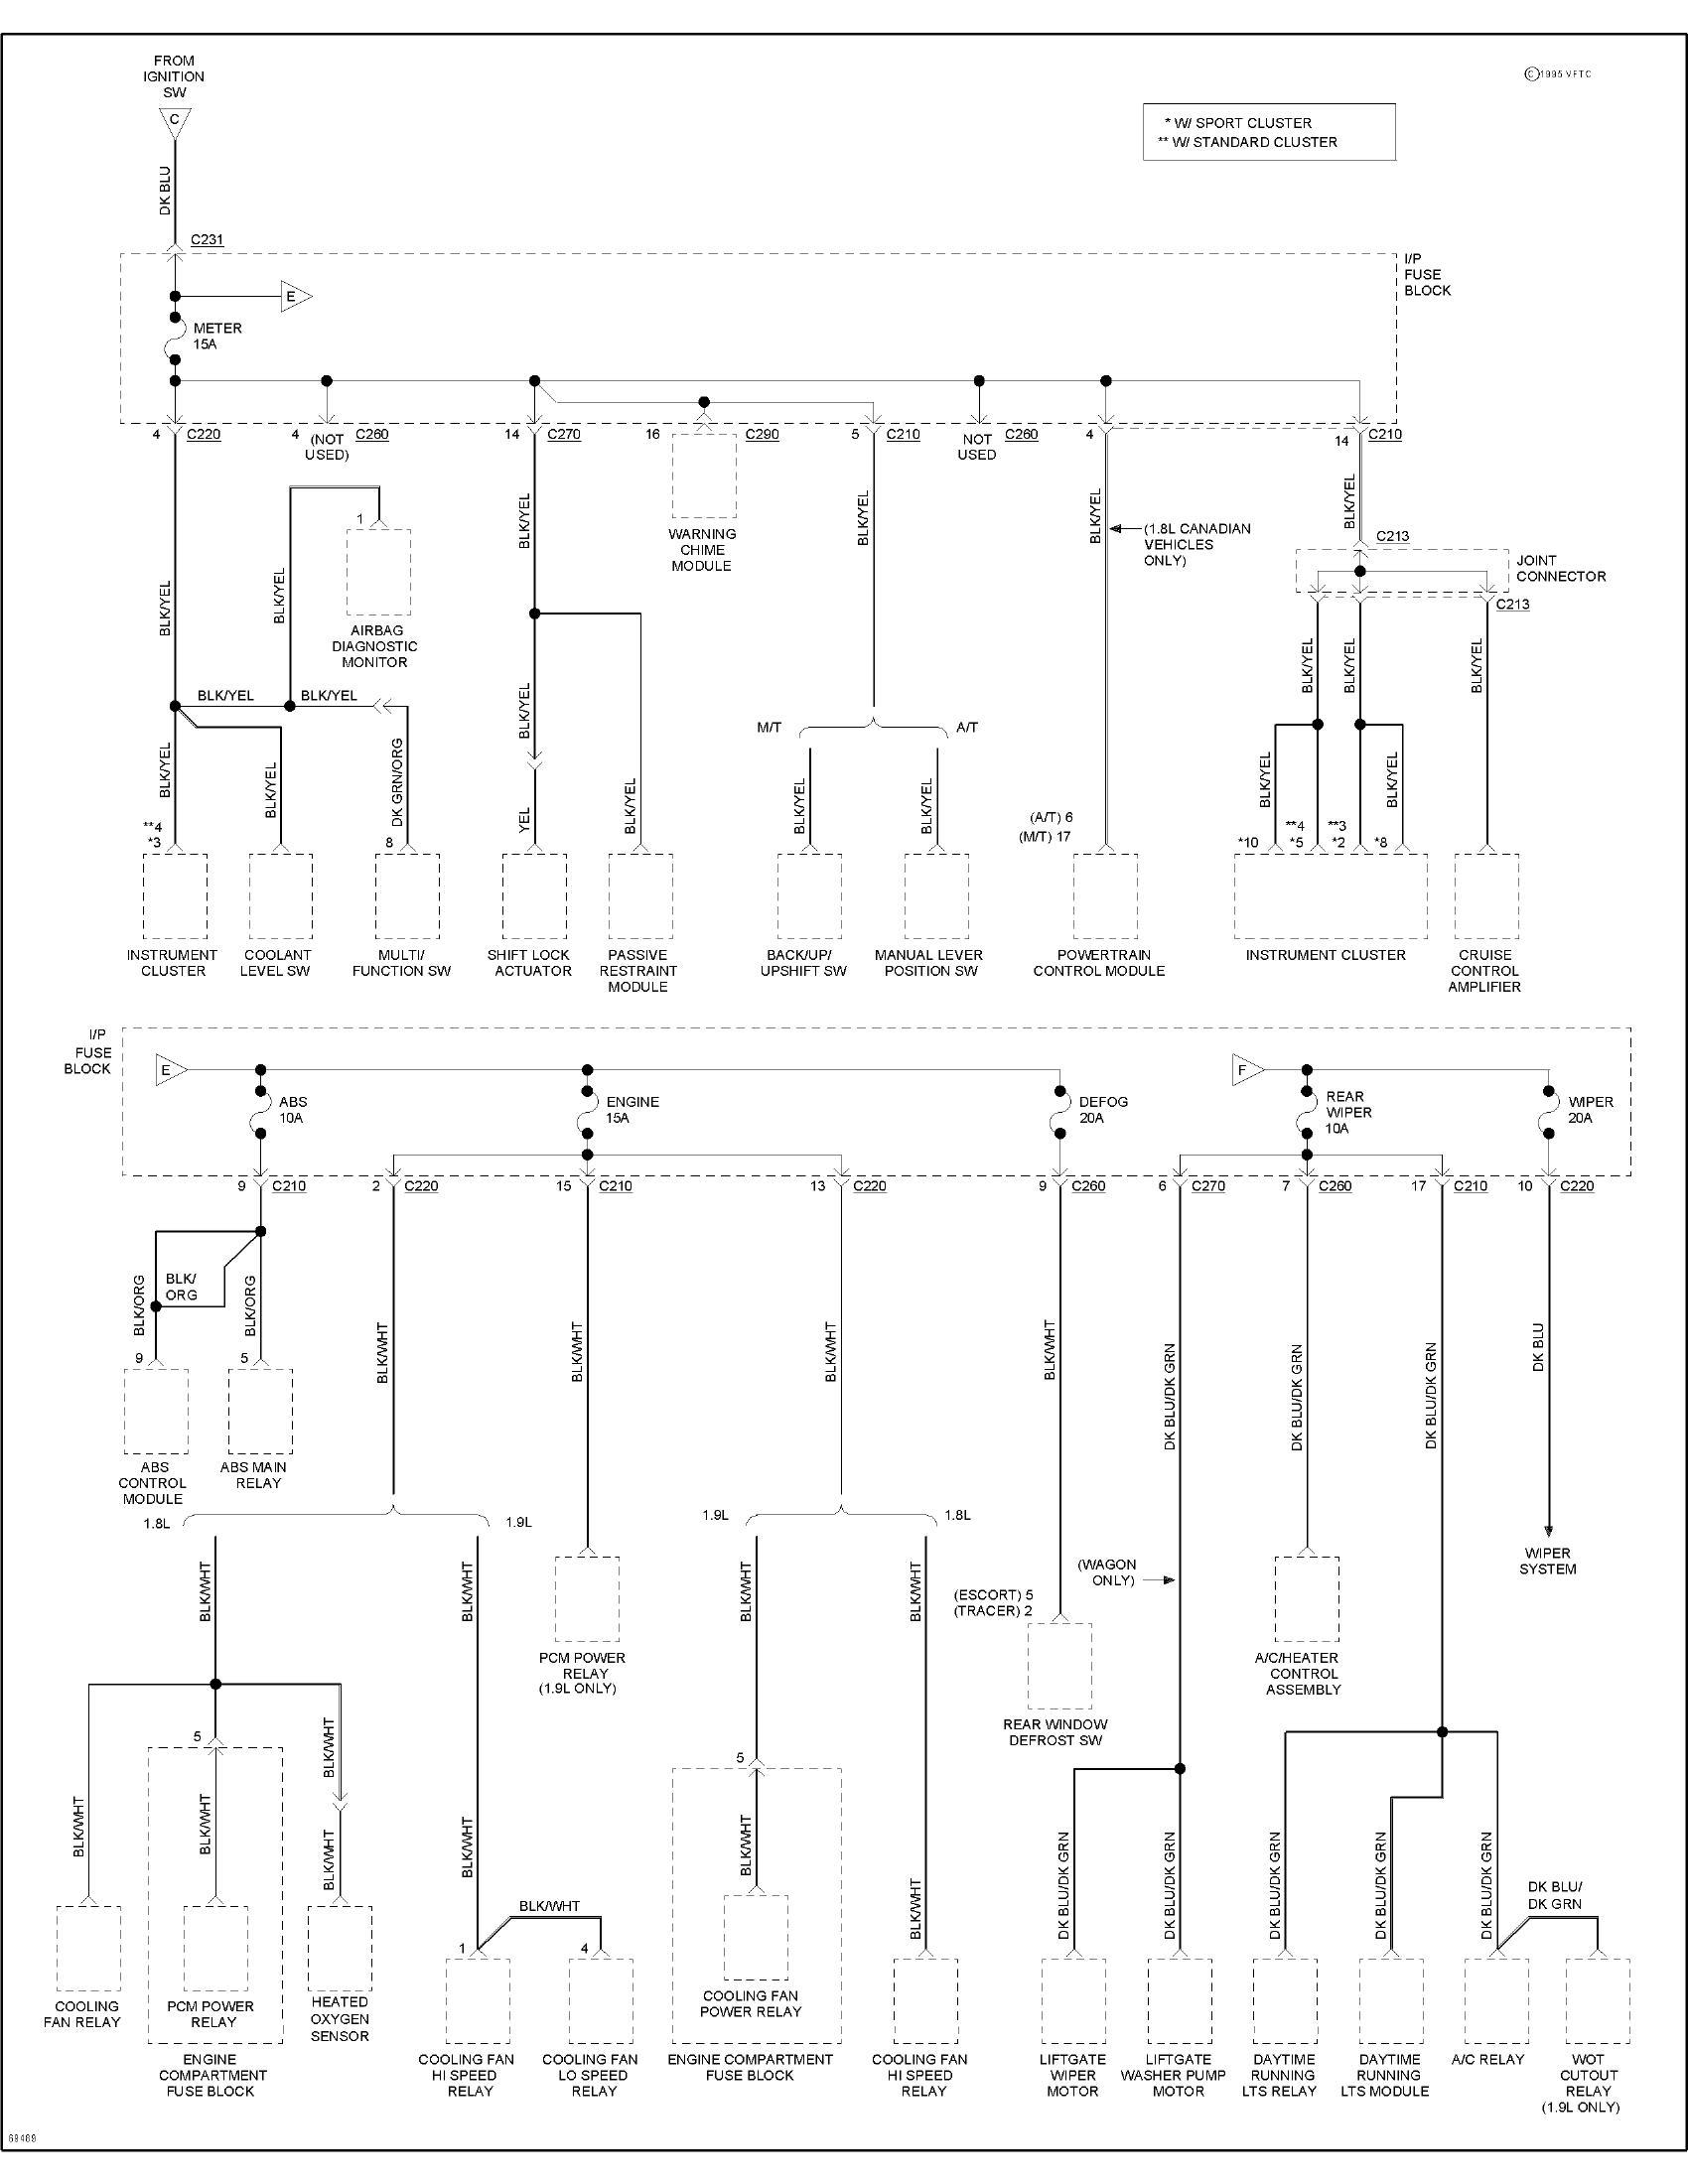 Abs Wiring Diagram Ford Zx2 Posts 1995 Escort Lx Having Electrical Problem Buss Quite Working 00 Ranger